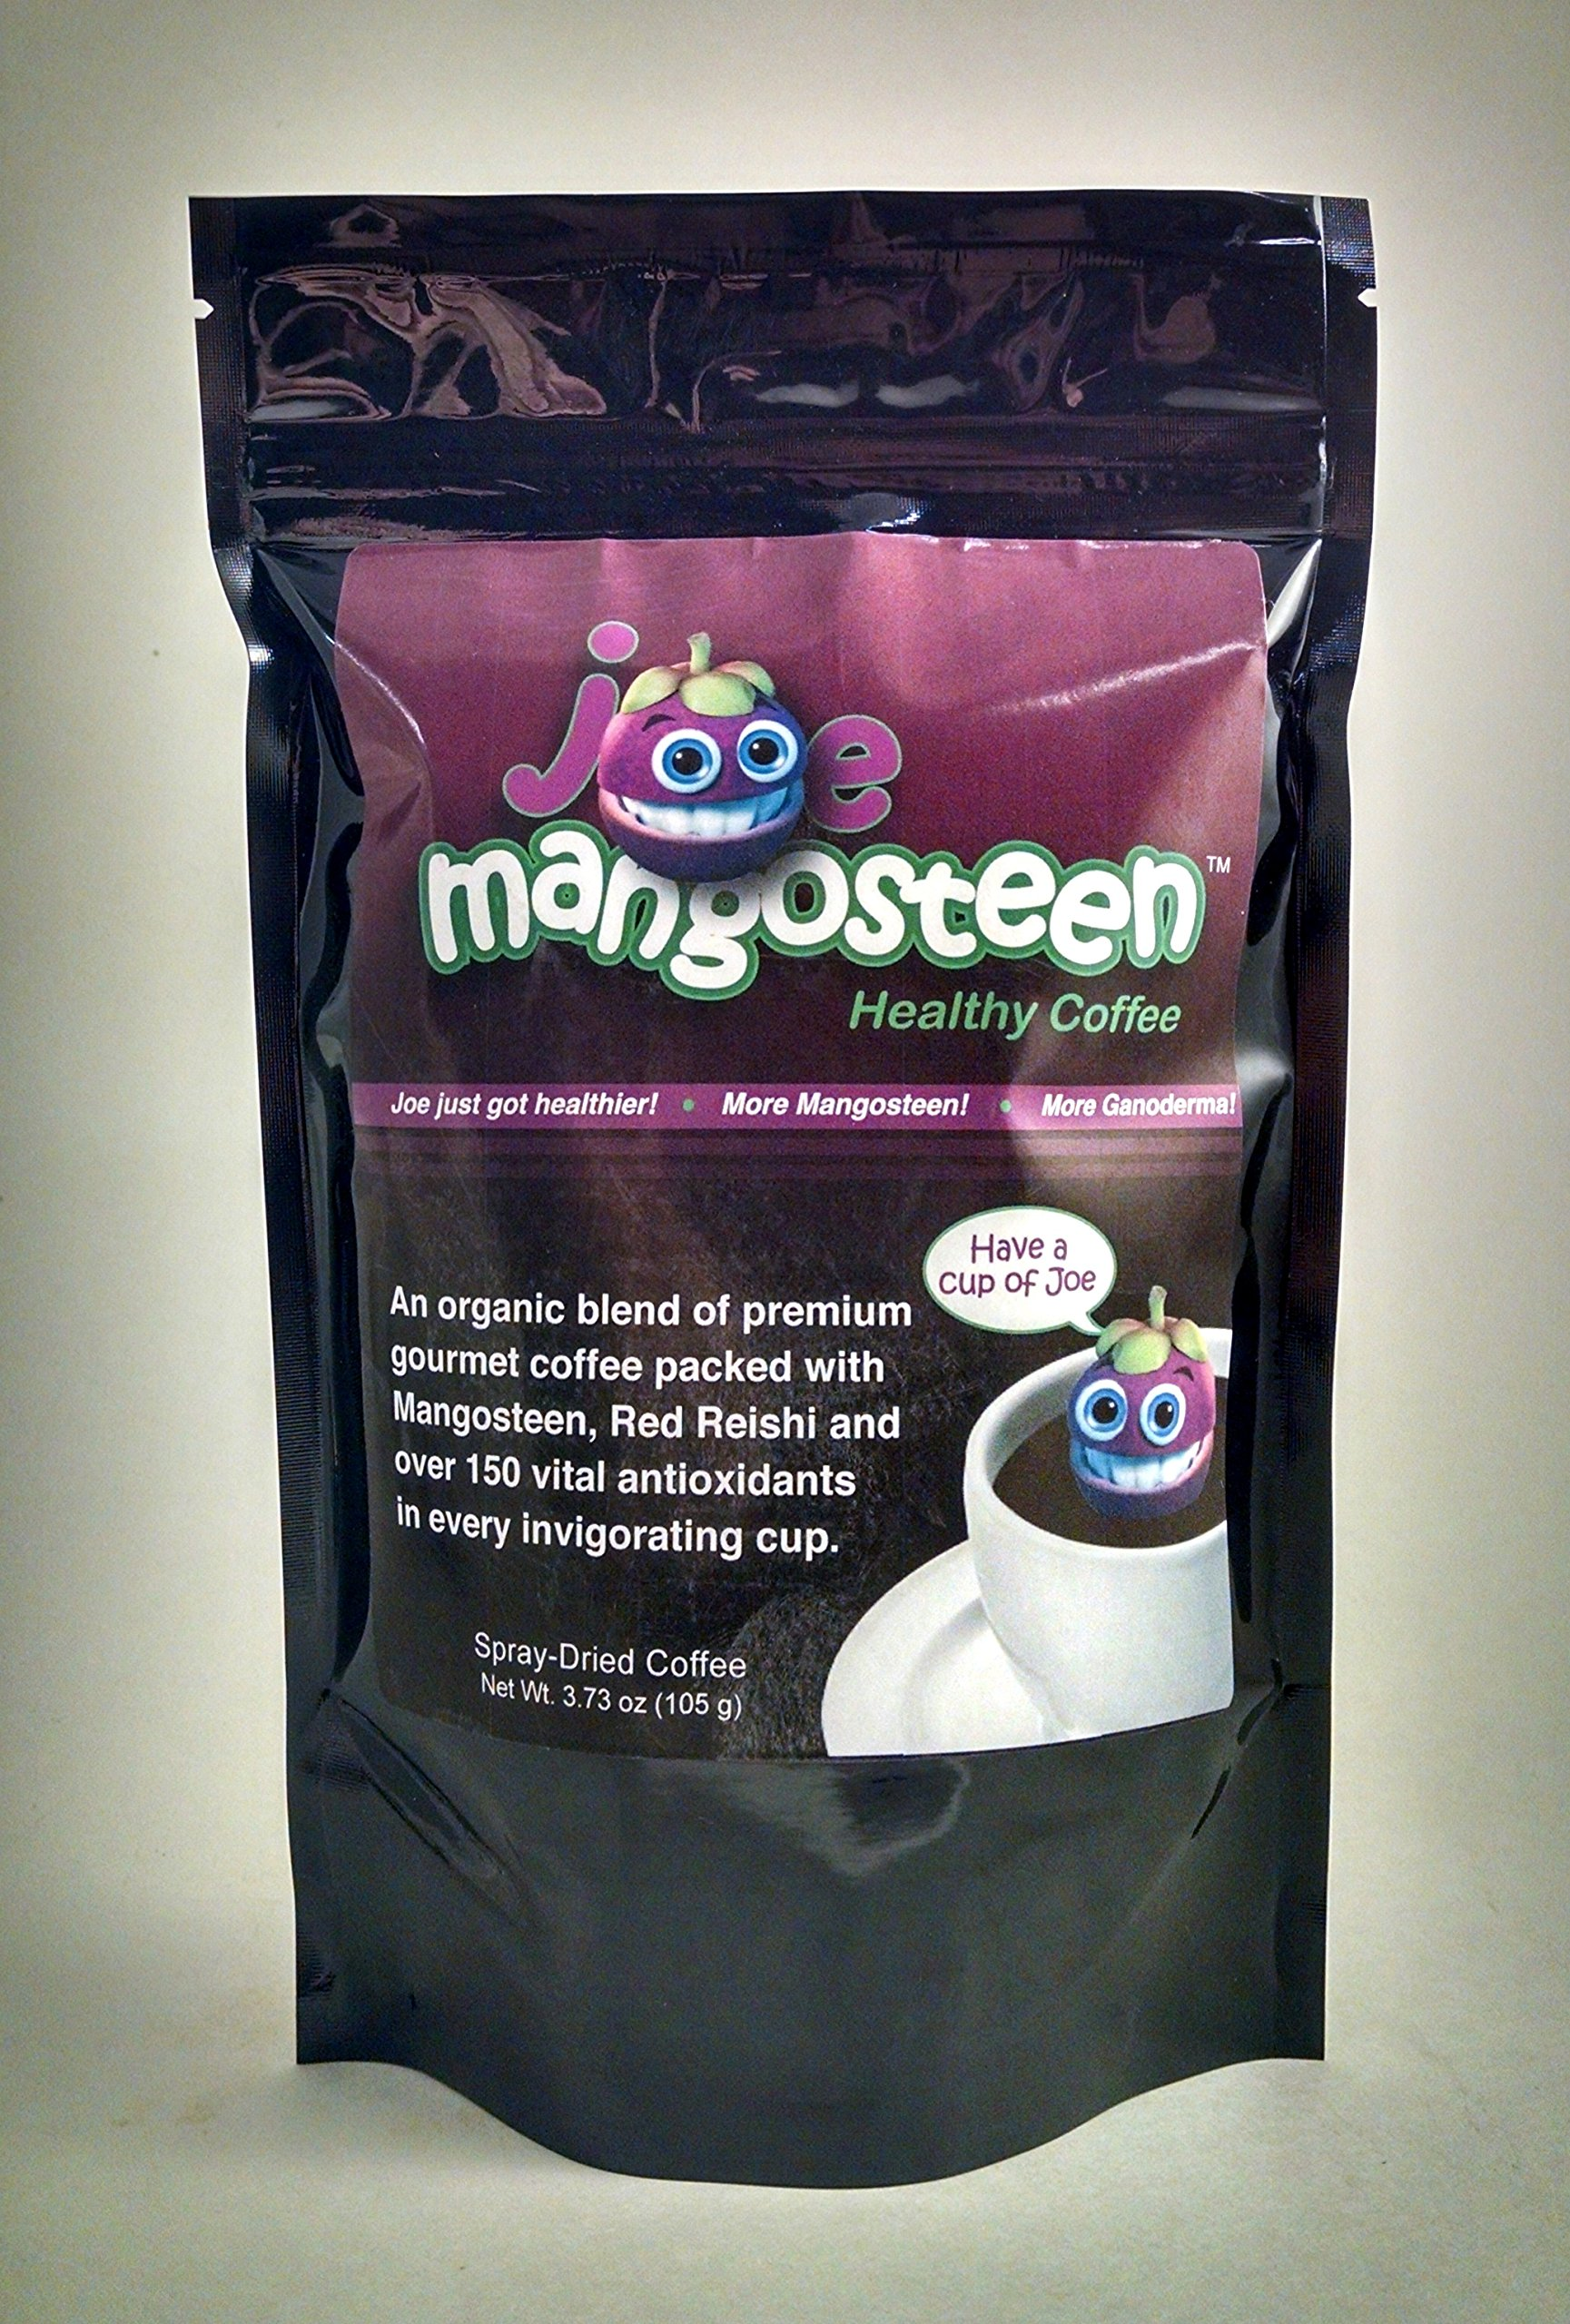 Joe Mangosteen Healthy Organic Coffee with Mangosteen & Ganoderma 12 - 3.73oz Bags (480 Servings) by Joe Mangosteen